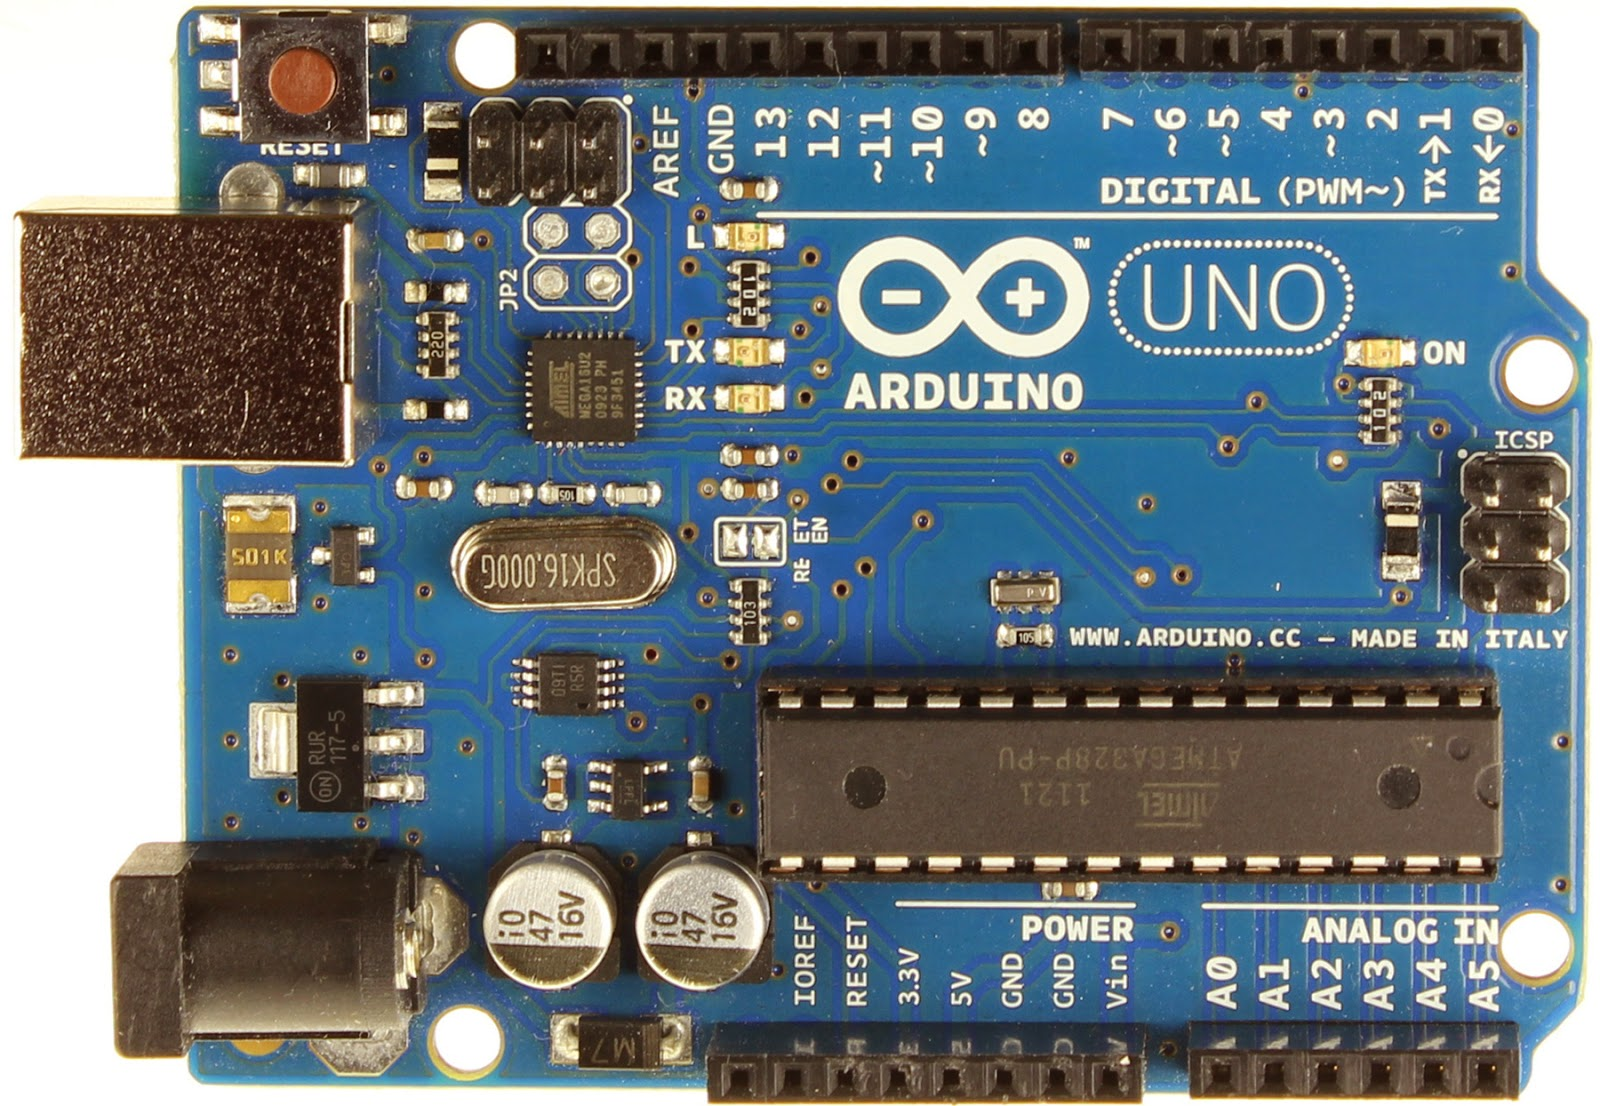 Turn on LED On/Off from internet using Arduino UNO R3 based